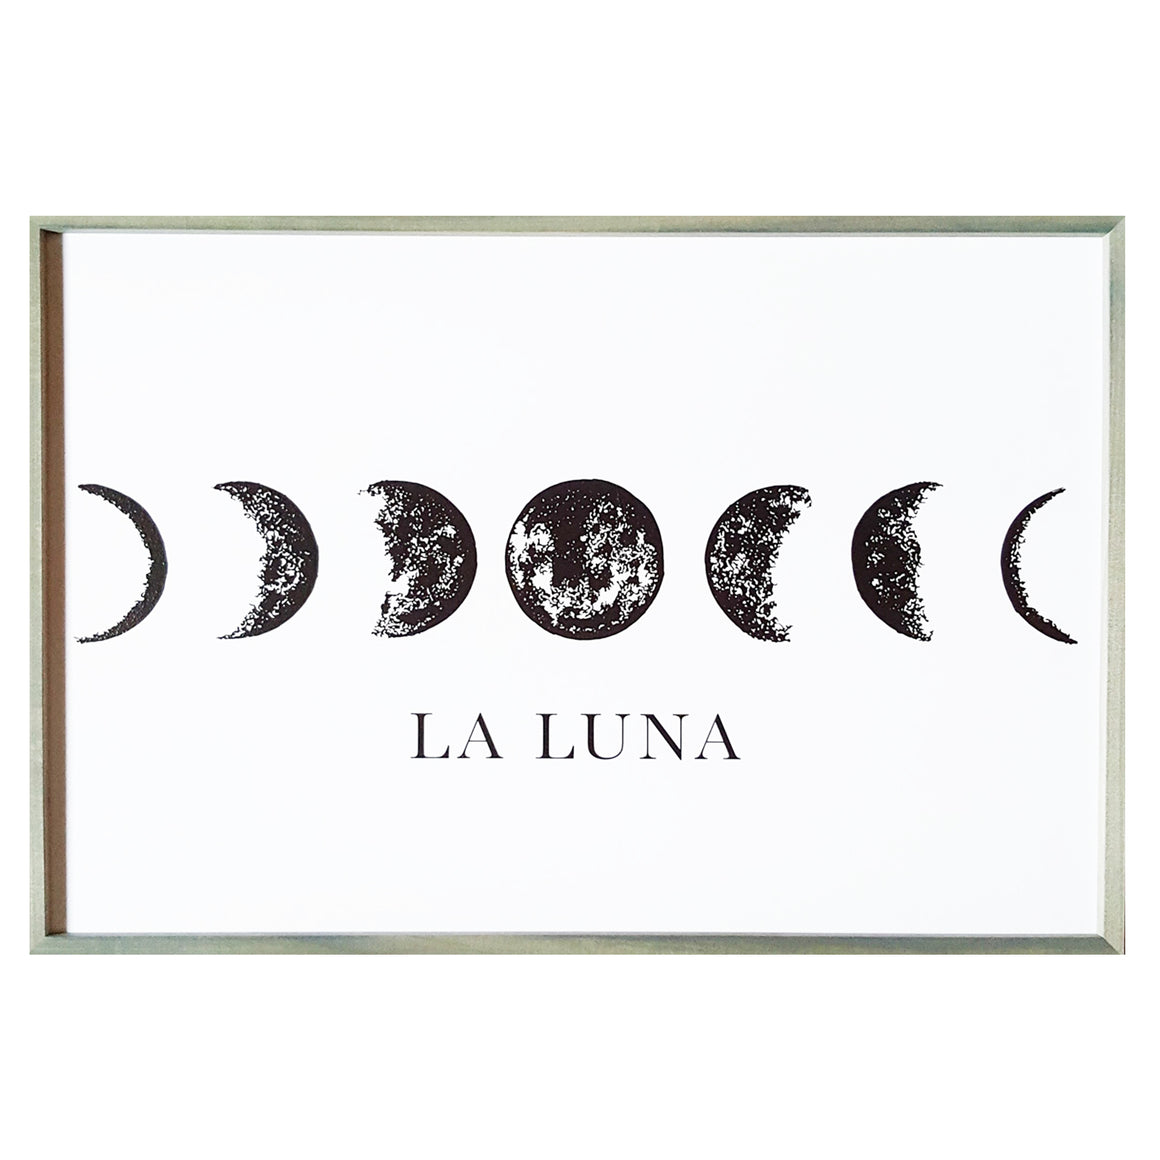 La Luna Wall Art Sign - 2' x 3'